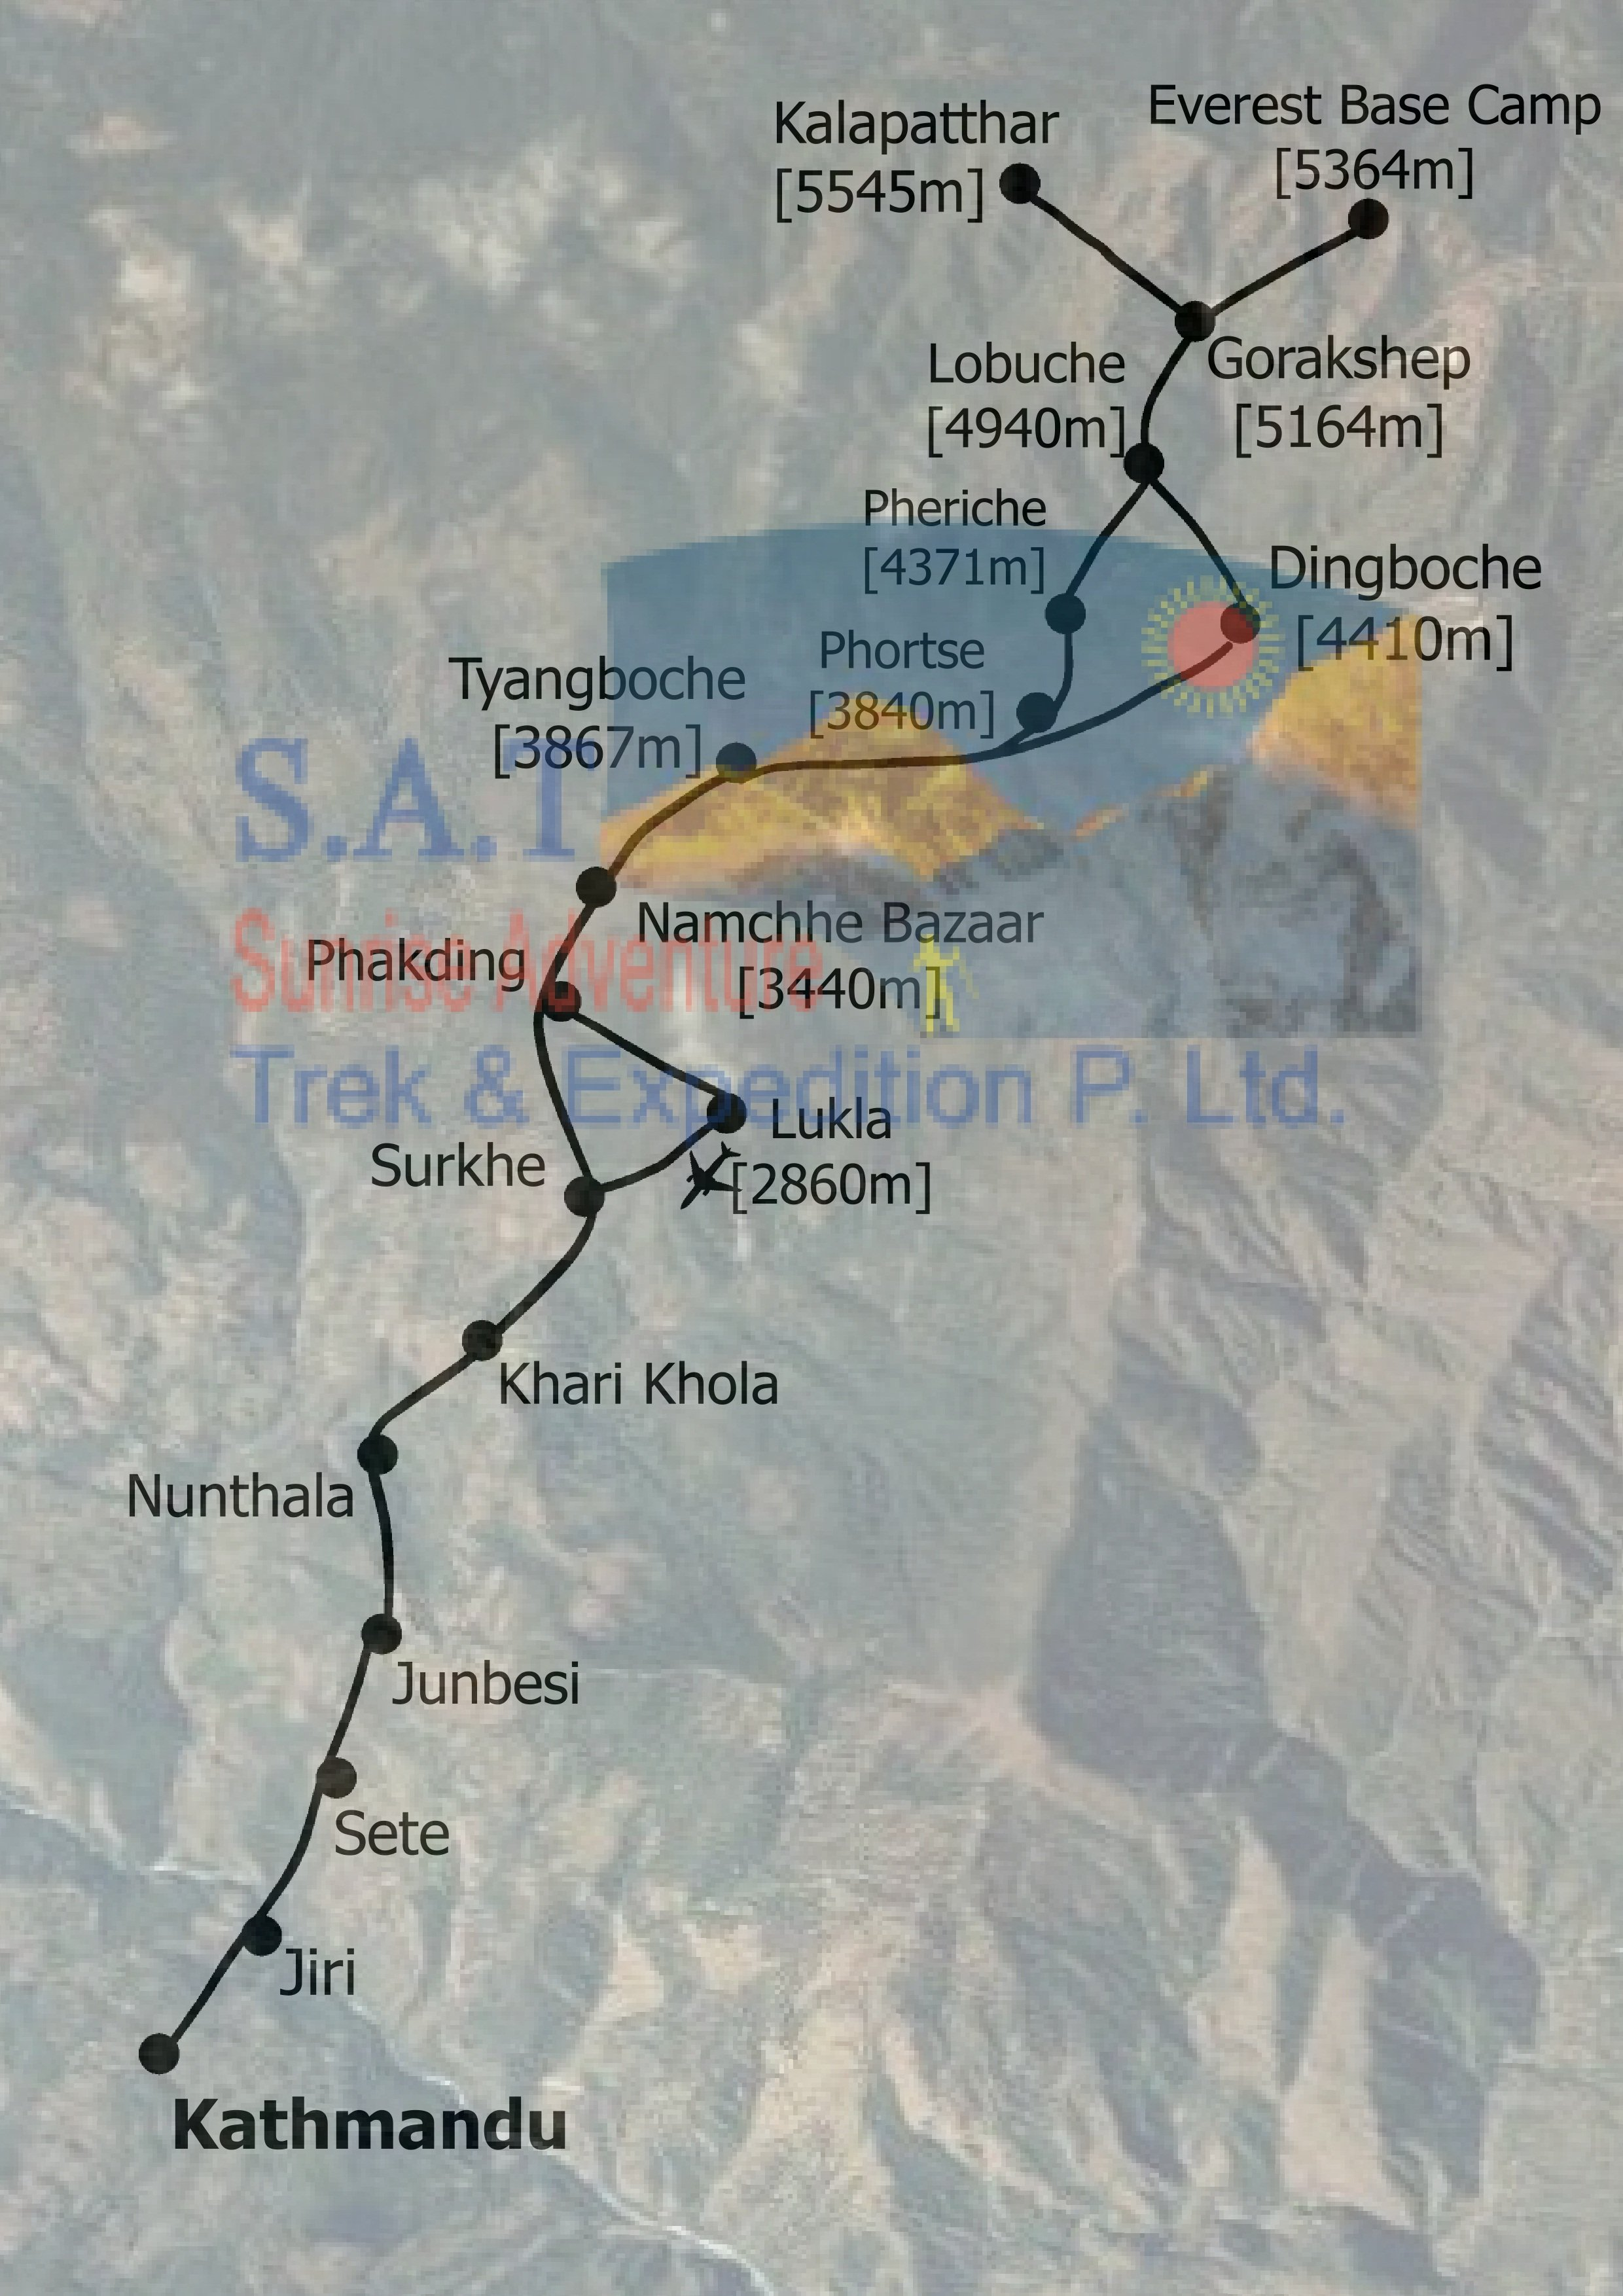 Jiri To Everest Base Camp Labled Hill on Where Is Kathmandu Nepal Located On The Map